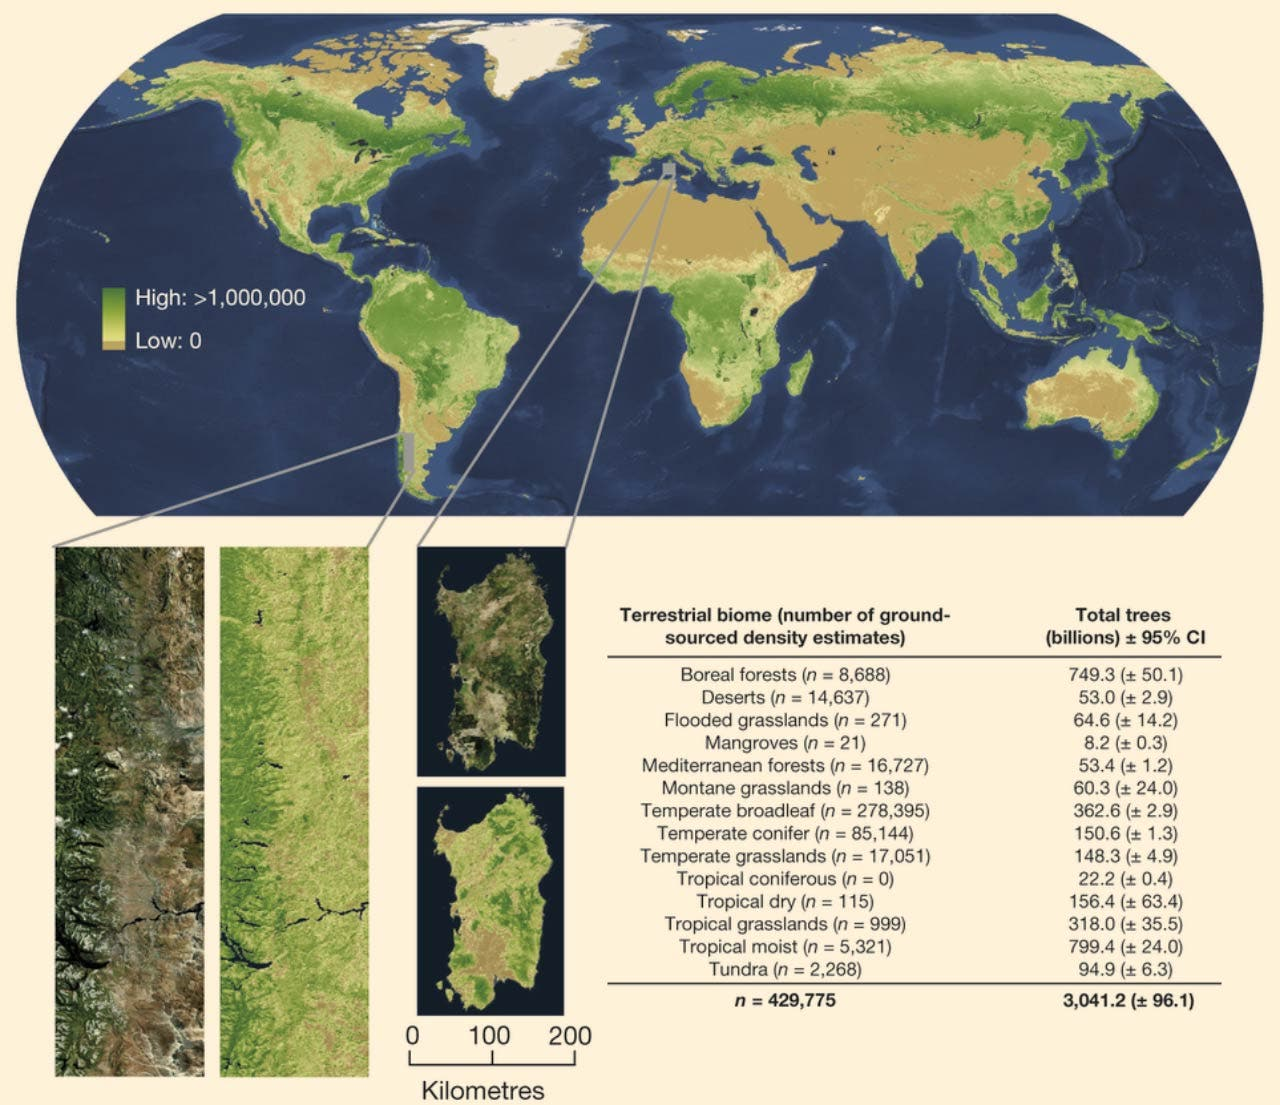 """Map of world showing location of existing 3 trillion trees """"width ="""" 1280 """"height ="""" 1105 """"srcset ="""" https://cleantechnica.com/files/2019/07/image_3198_2e-Earth-Trees.jpg 1280w, https://cleantechnica.com/ files / 2019/07 / image_3198_2e-Earth-Trees-270x233.jpg 270w, https://cleantechnica.com/files/2019/07/image_3198_2e-Earth-Trees-768x663.jpg 768w, https://cleantechnica.com/ files / 2019/07 / image_3198_2e-Earth-Trees-570x492.jpg 570w """"sizes ="""" (max-width: 1280px) 100vw, 1280px"""